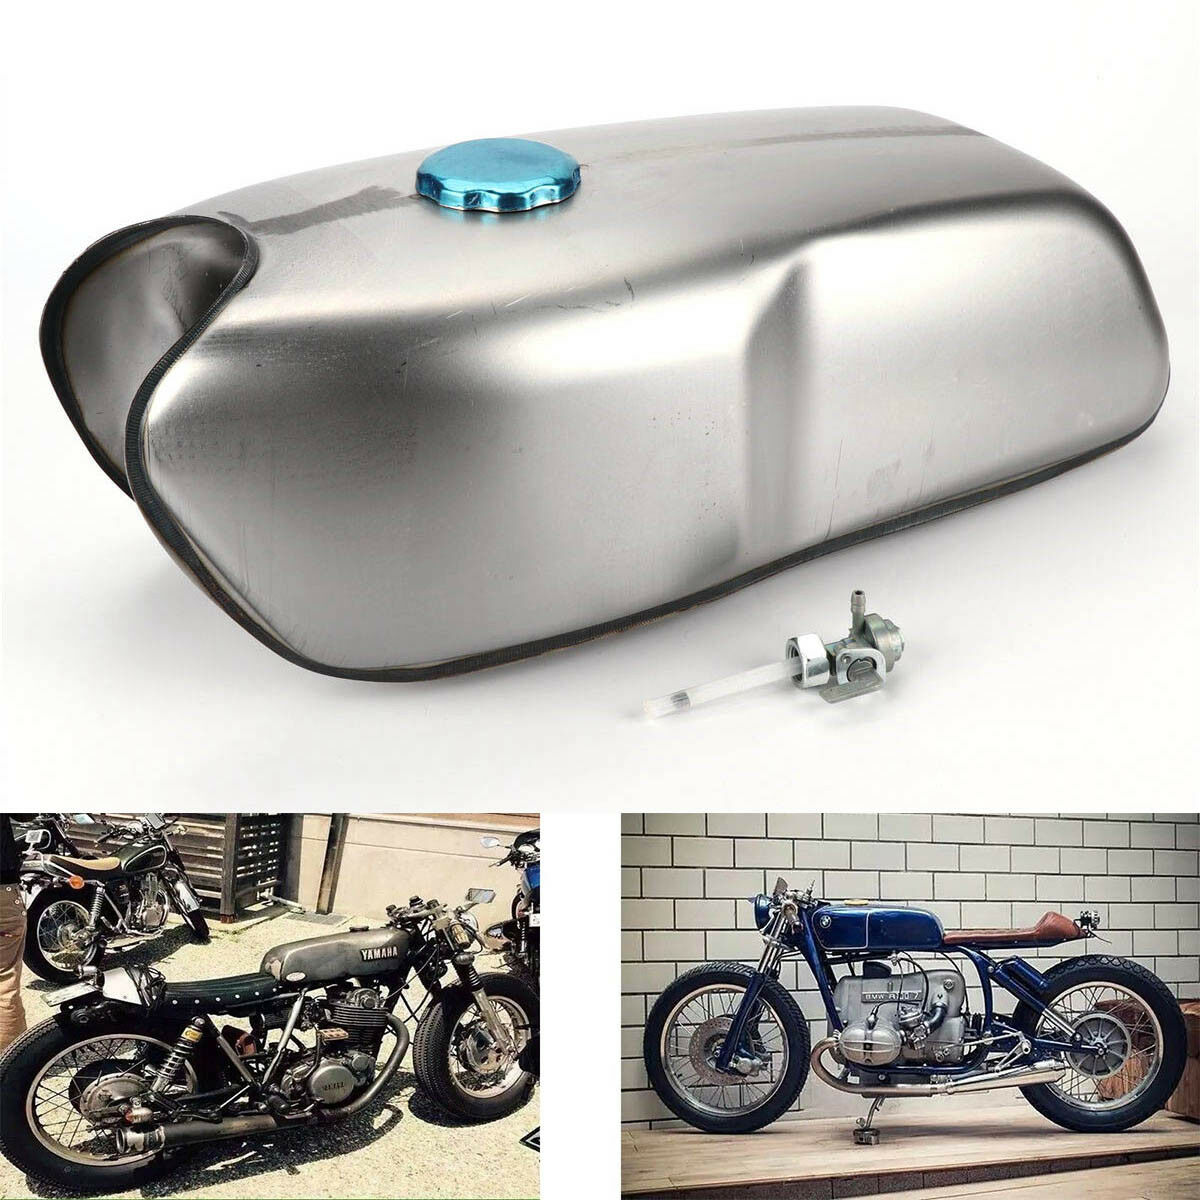 Bruce /& Shark 9L//2.4 Gallon Gas Fuel Tank Universal for Most Cafe Racer for B M W for Honda for Yamaha for Suzuki